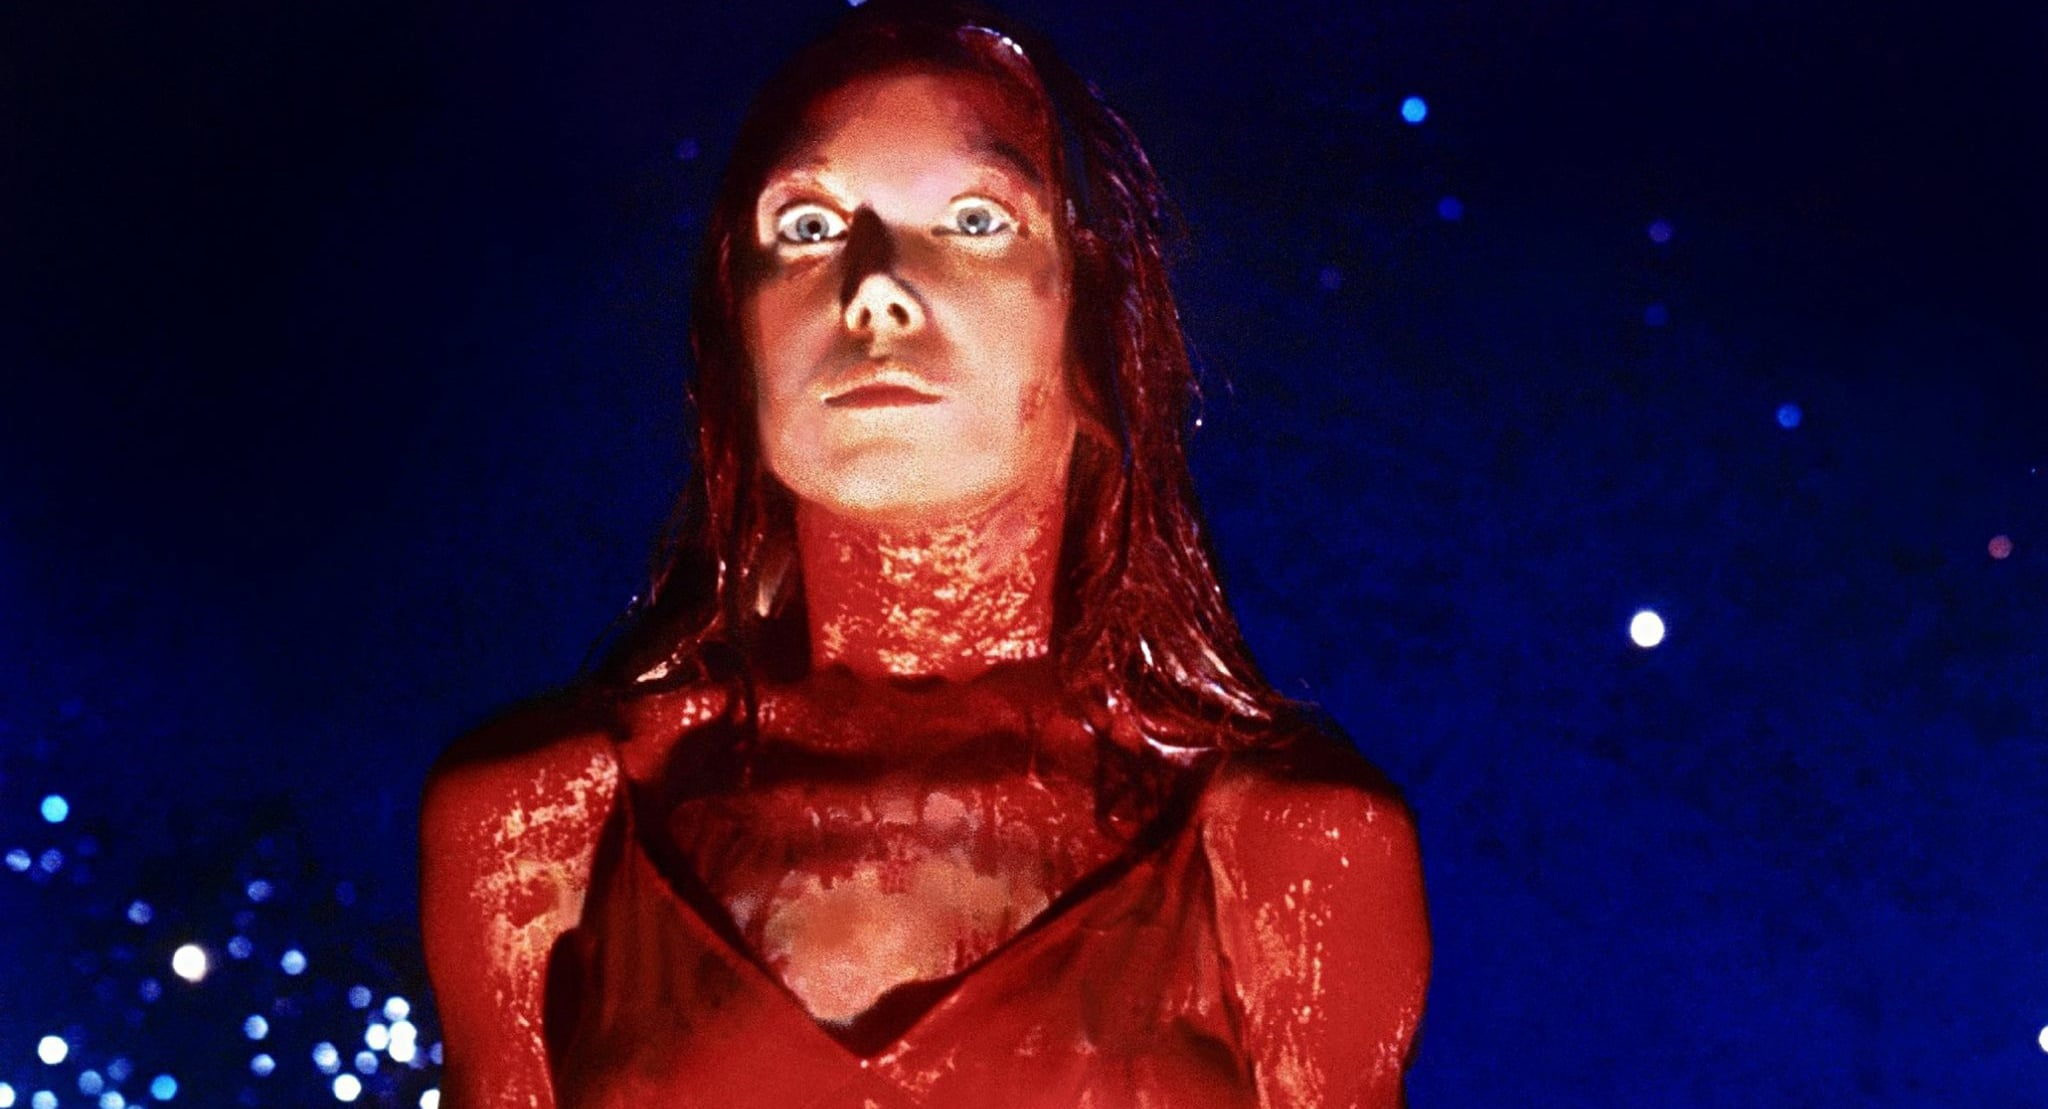 Carrie White - Carrie